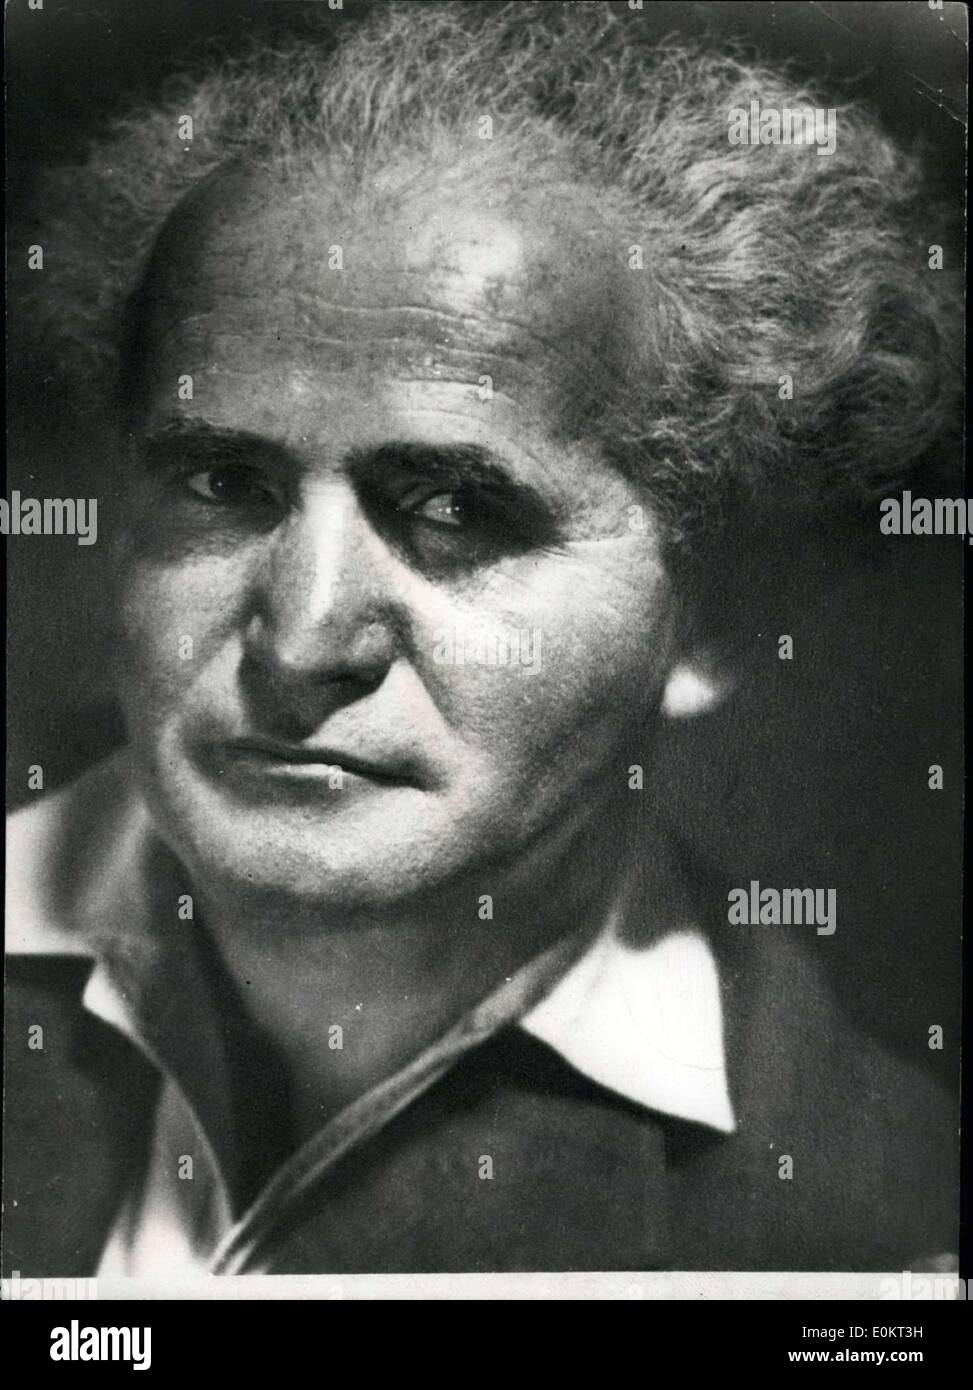 May 14, 1948 - David Ben-Gurion, born 1886, Israel Labor: Premier designate of the new Hebrew state with the Jews leave proclaimed. - Stock Image